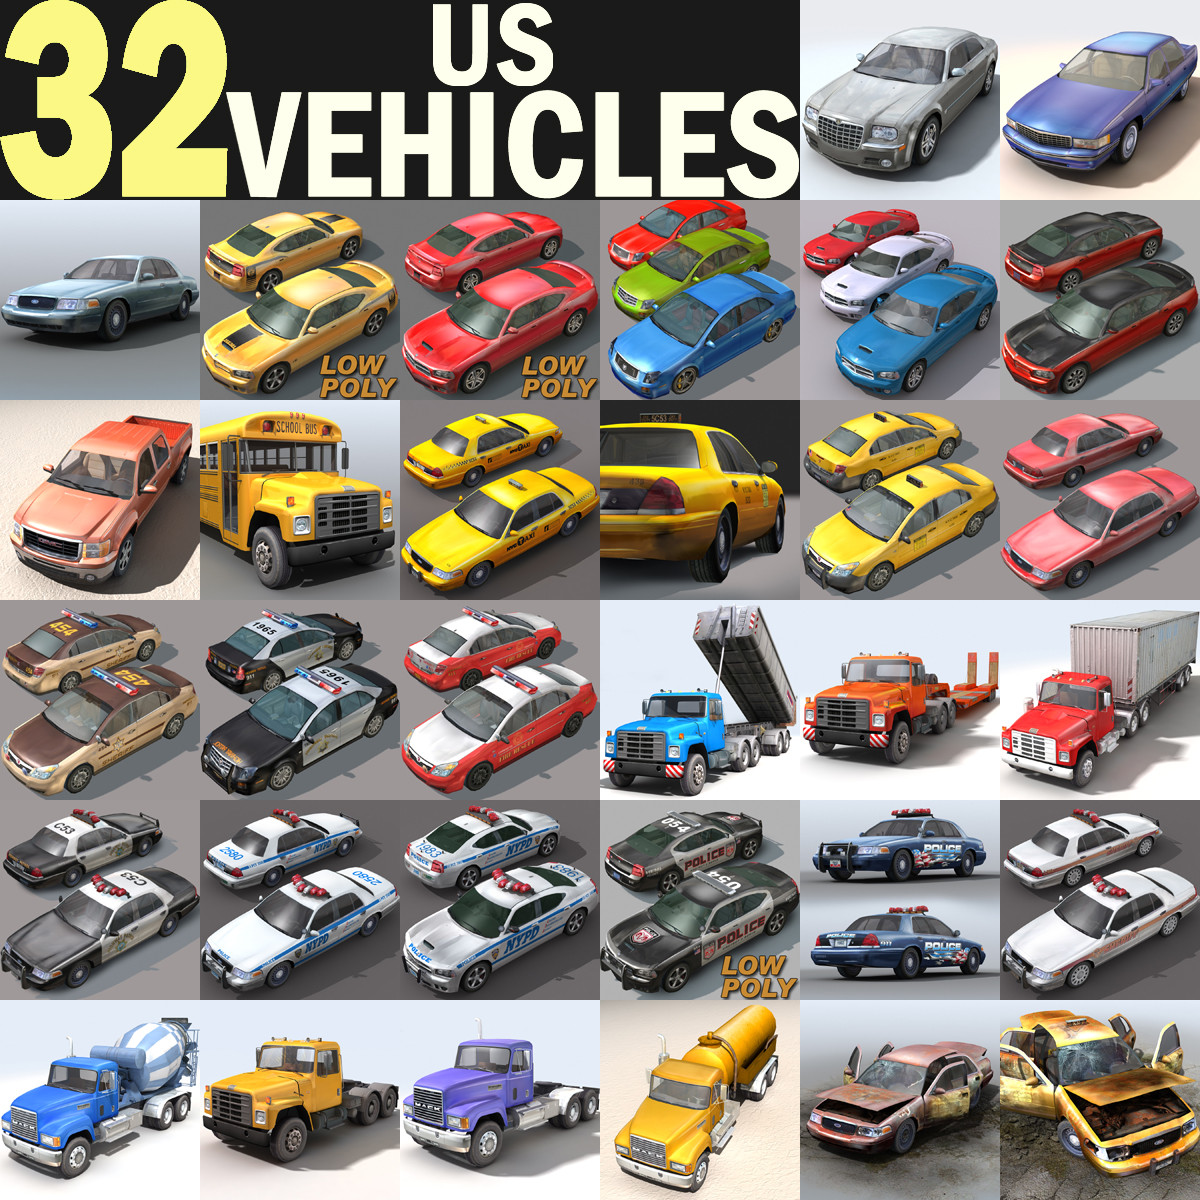 A_Pack2_US_Vehicles.jpg